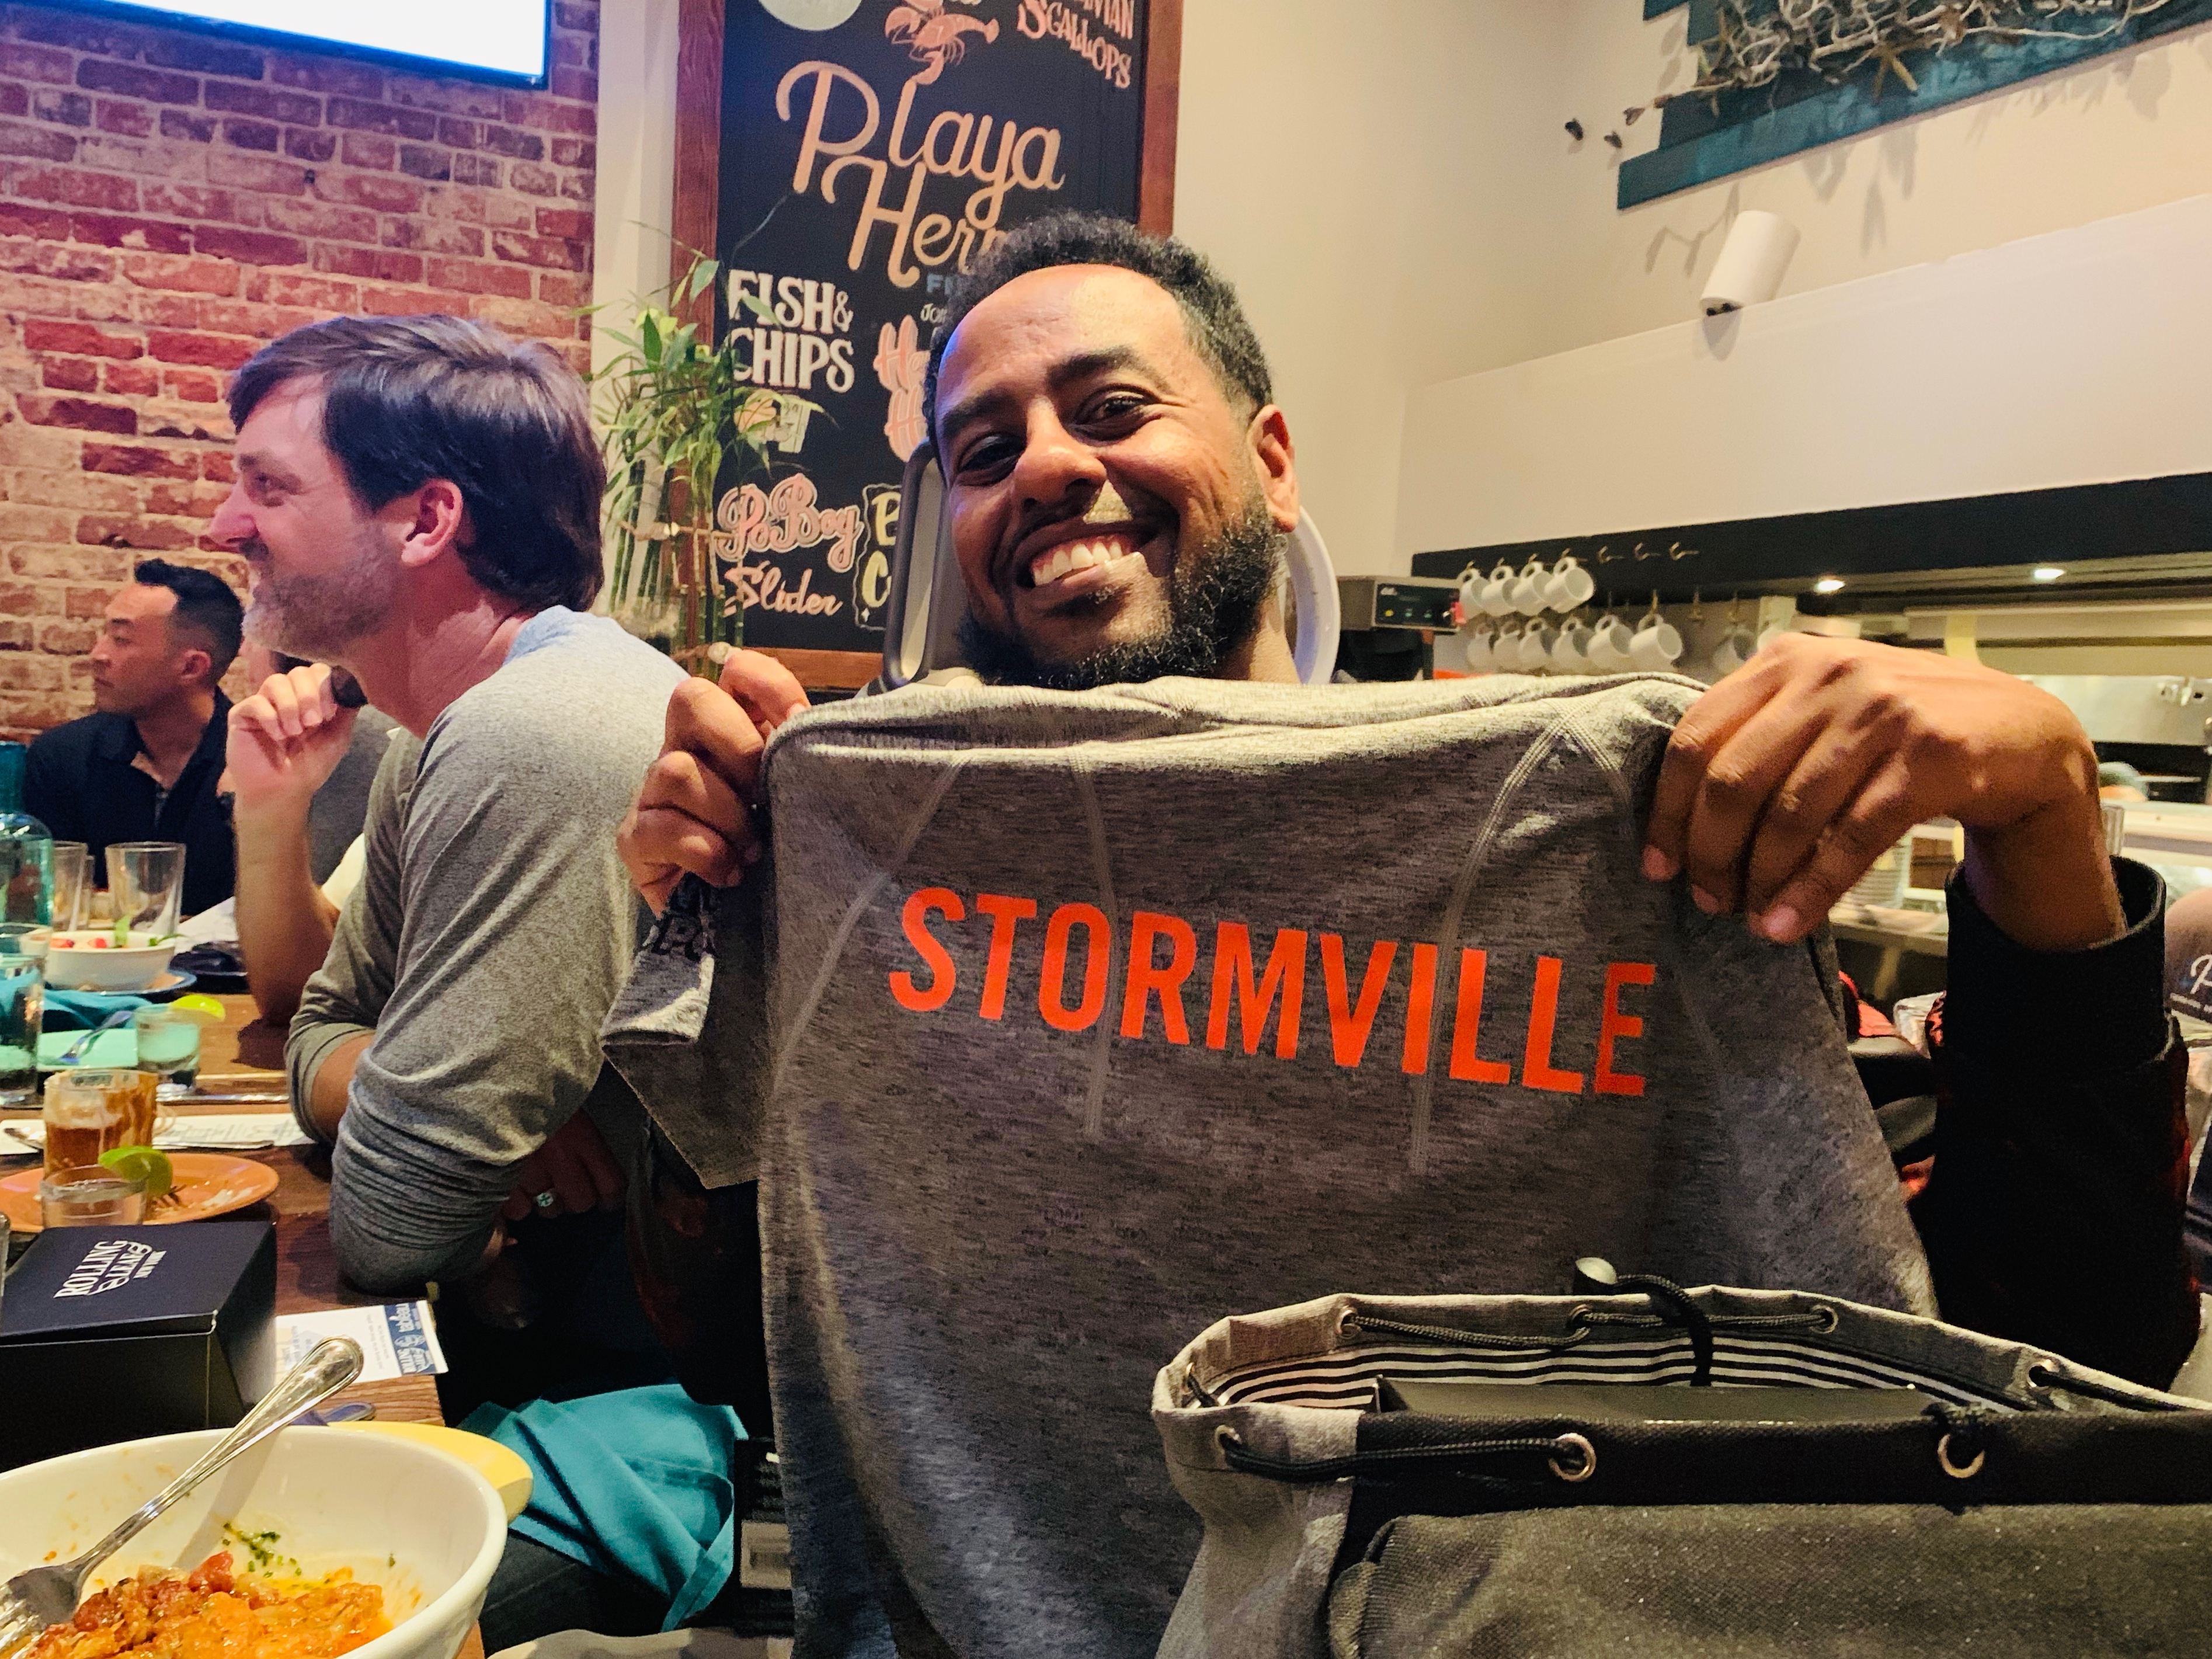 Owners-Dinner-LA-19-Amin-Draws-Stormville-IMG_6446